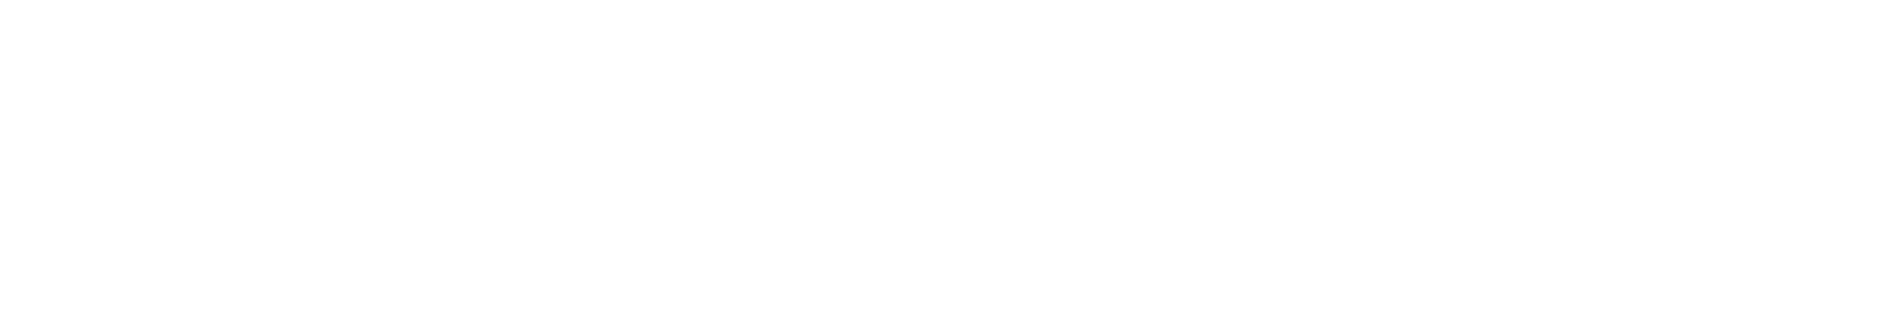 Powell health solutions logo